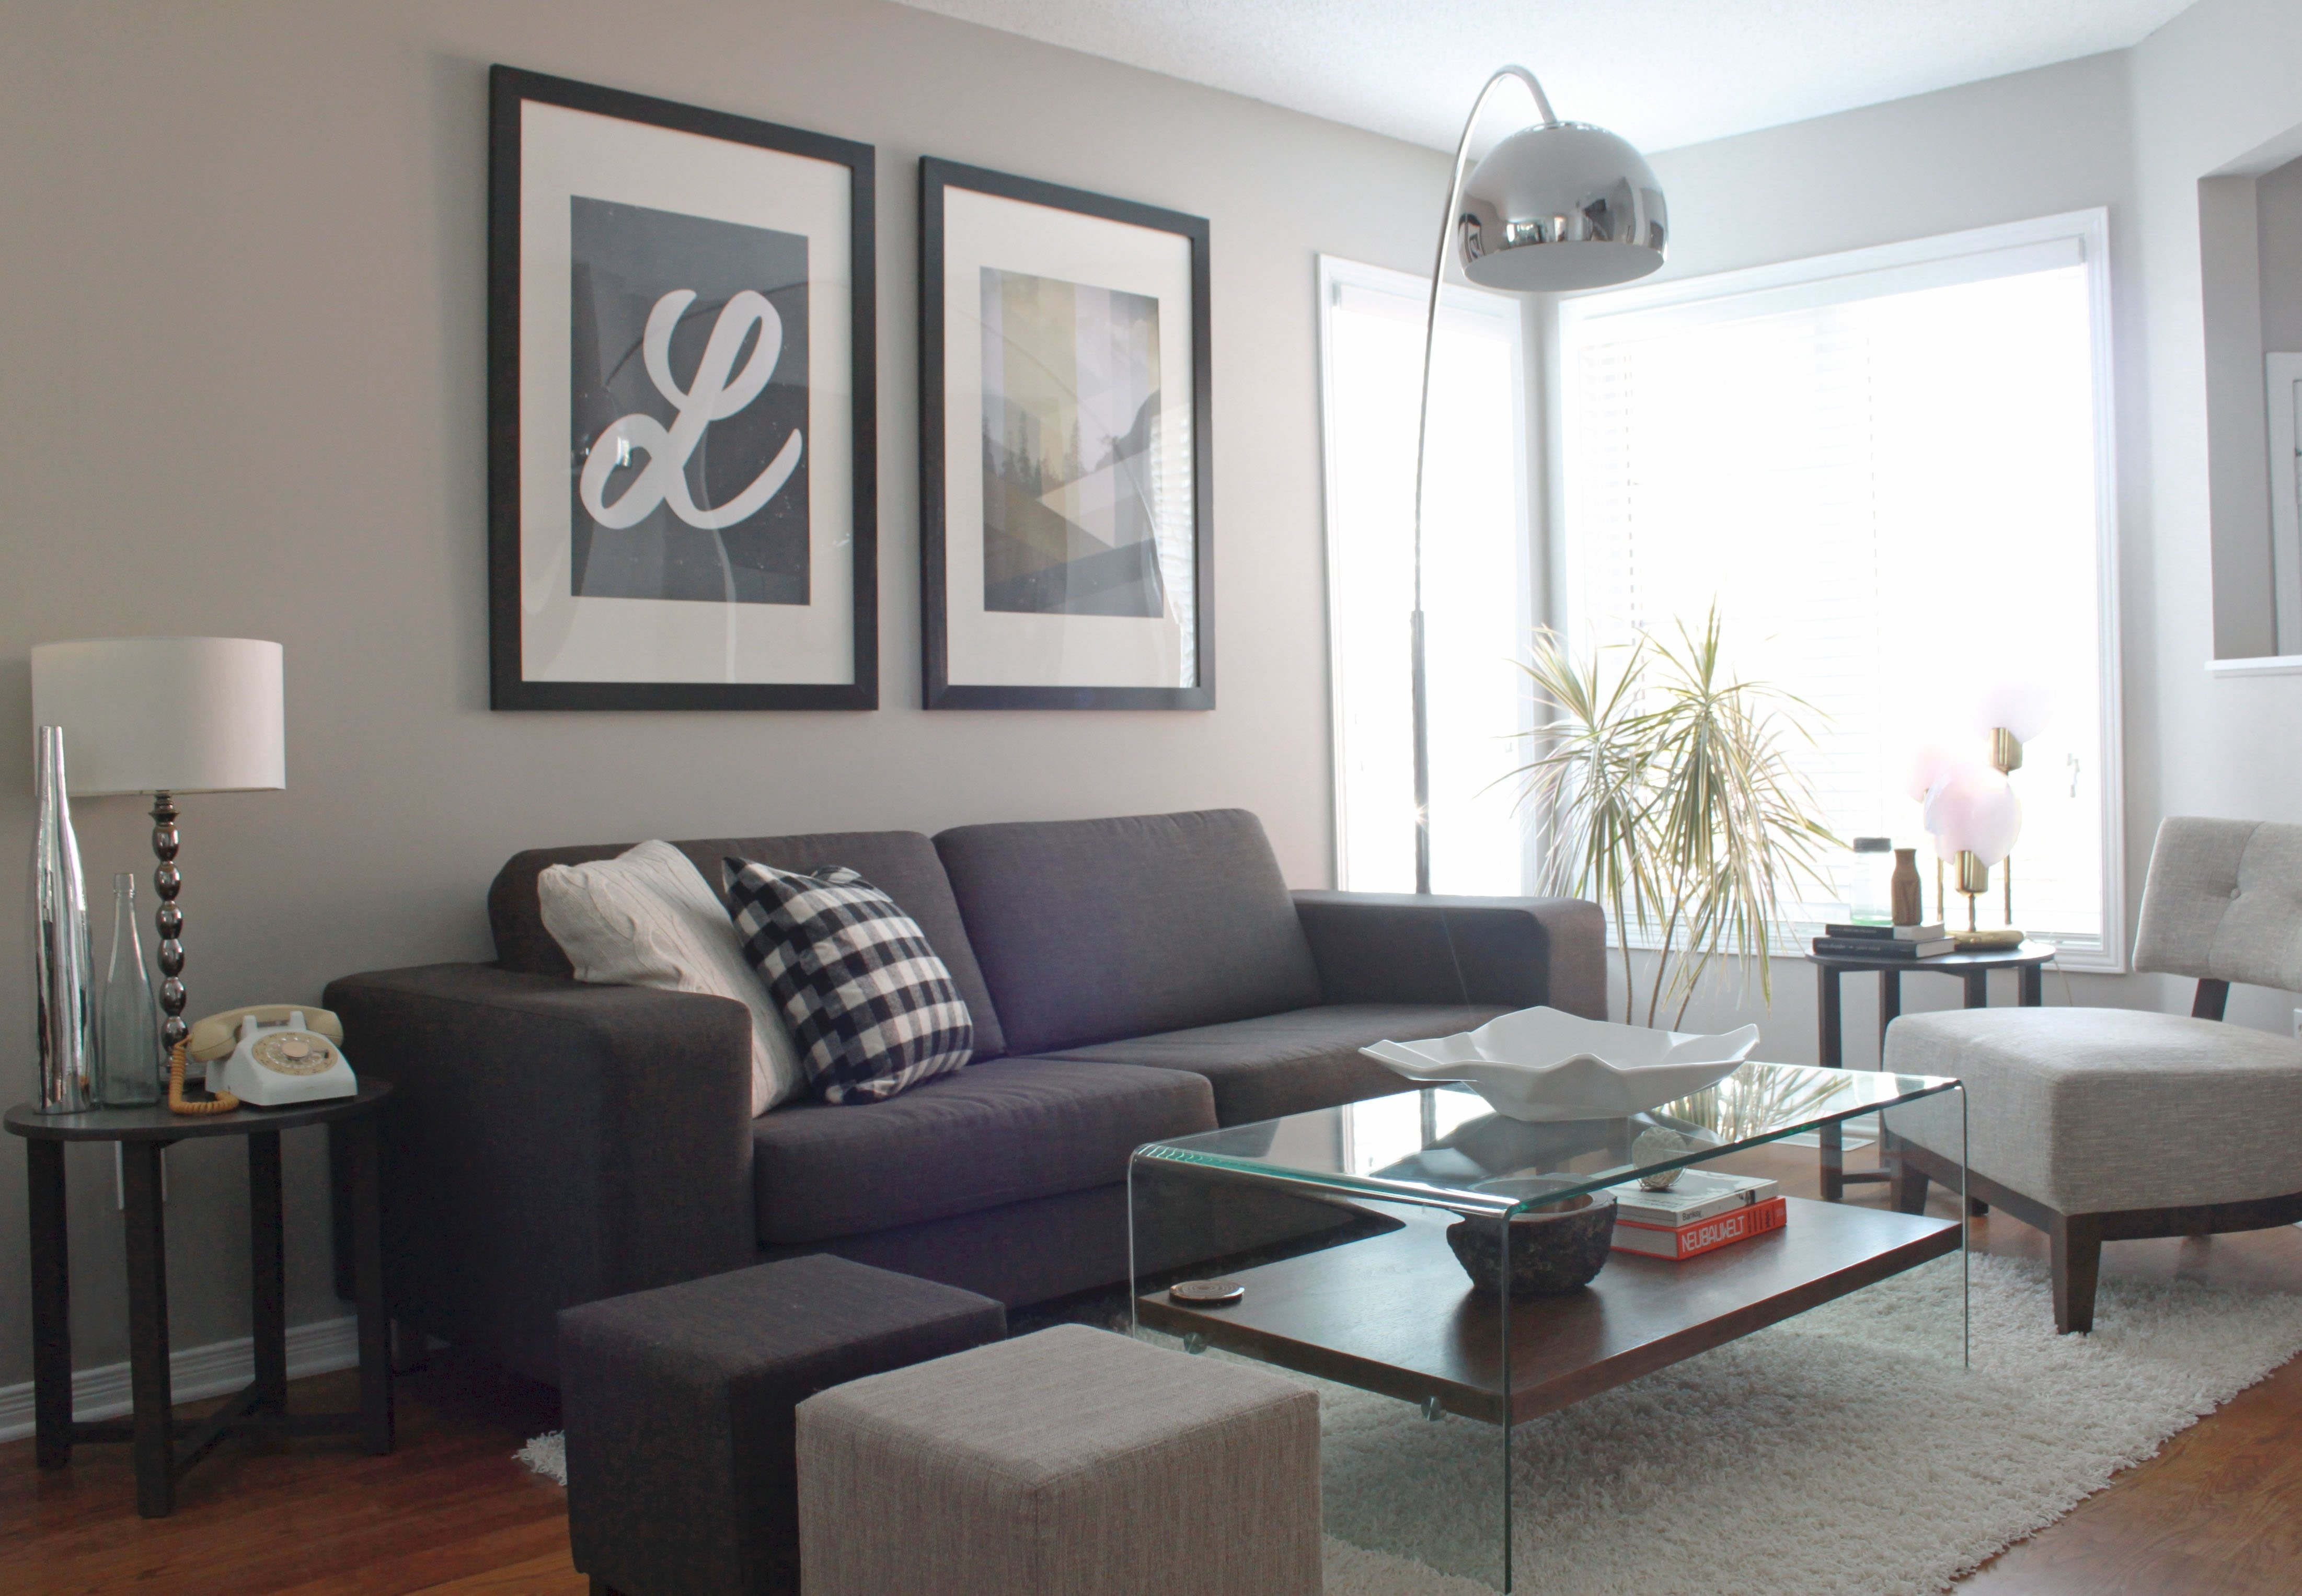 10 Stylish Living Room Color Scheme Ideas colorbos for living rooms best small awesome grey scheme room home